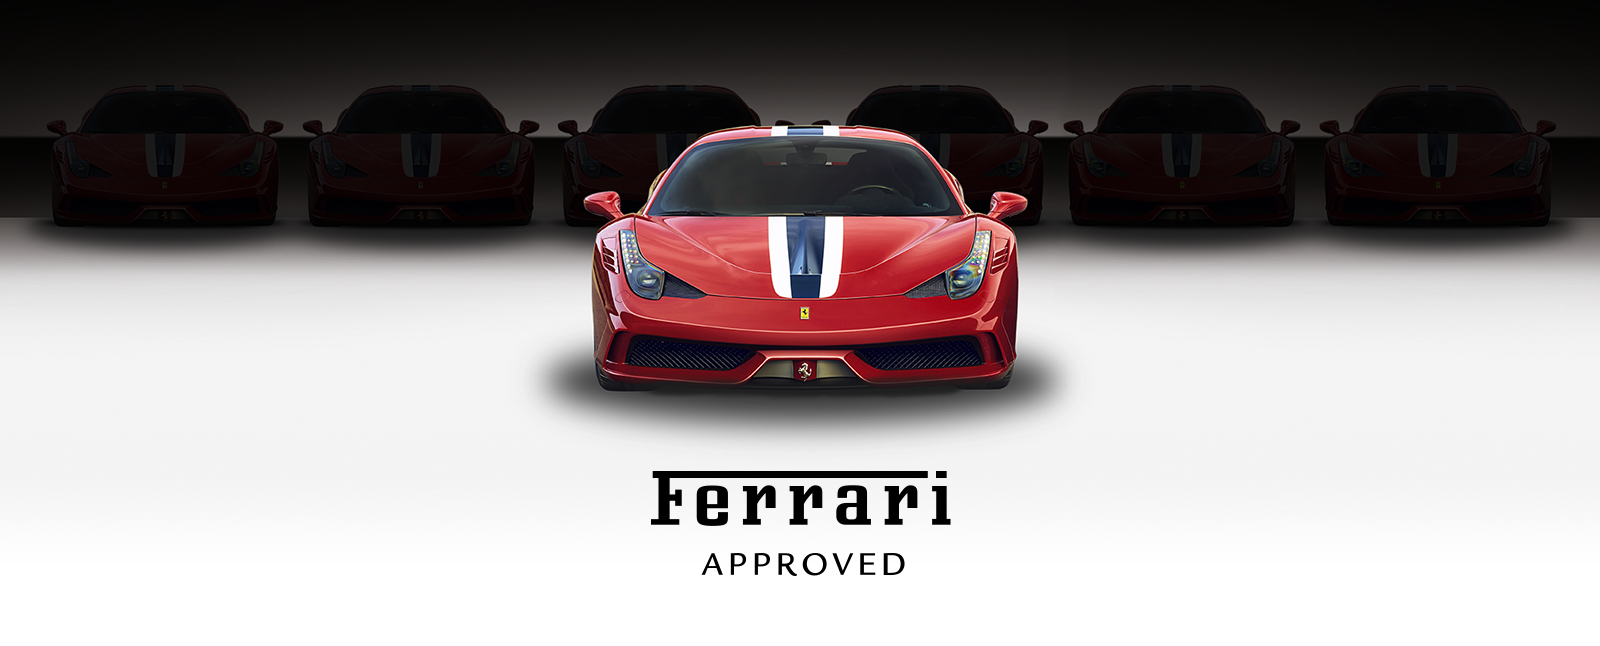 Ferrari Approved